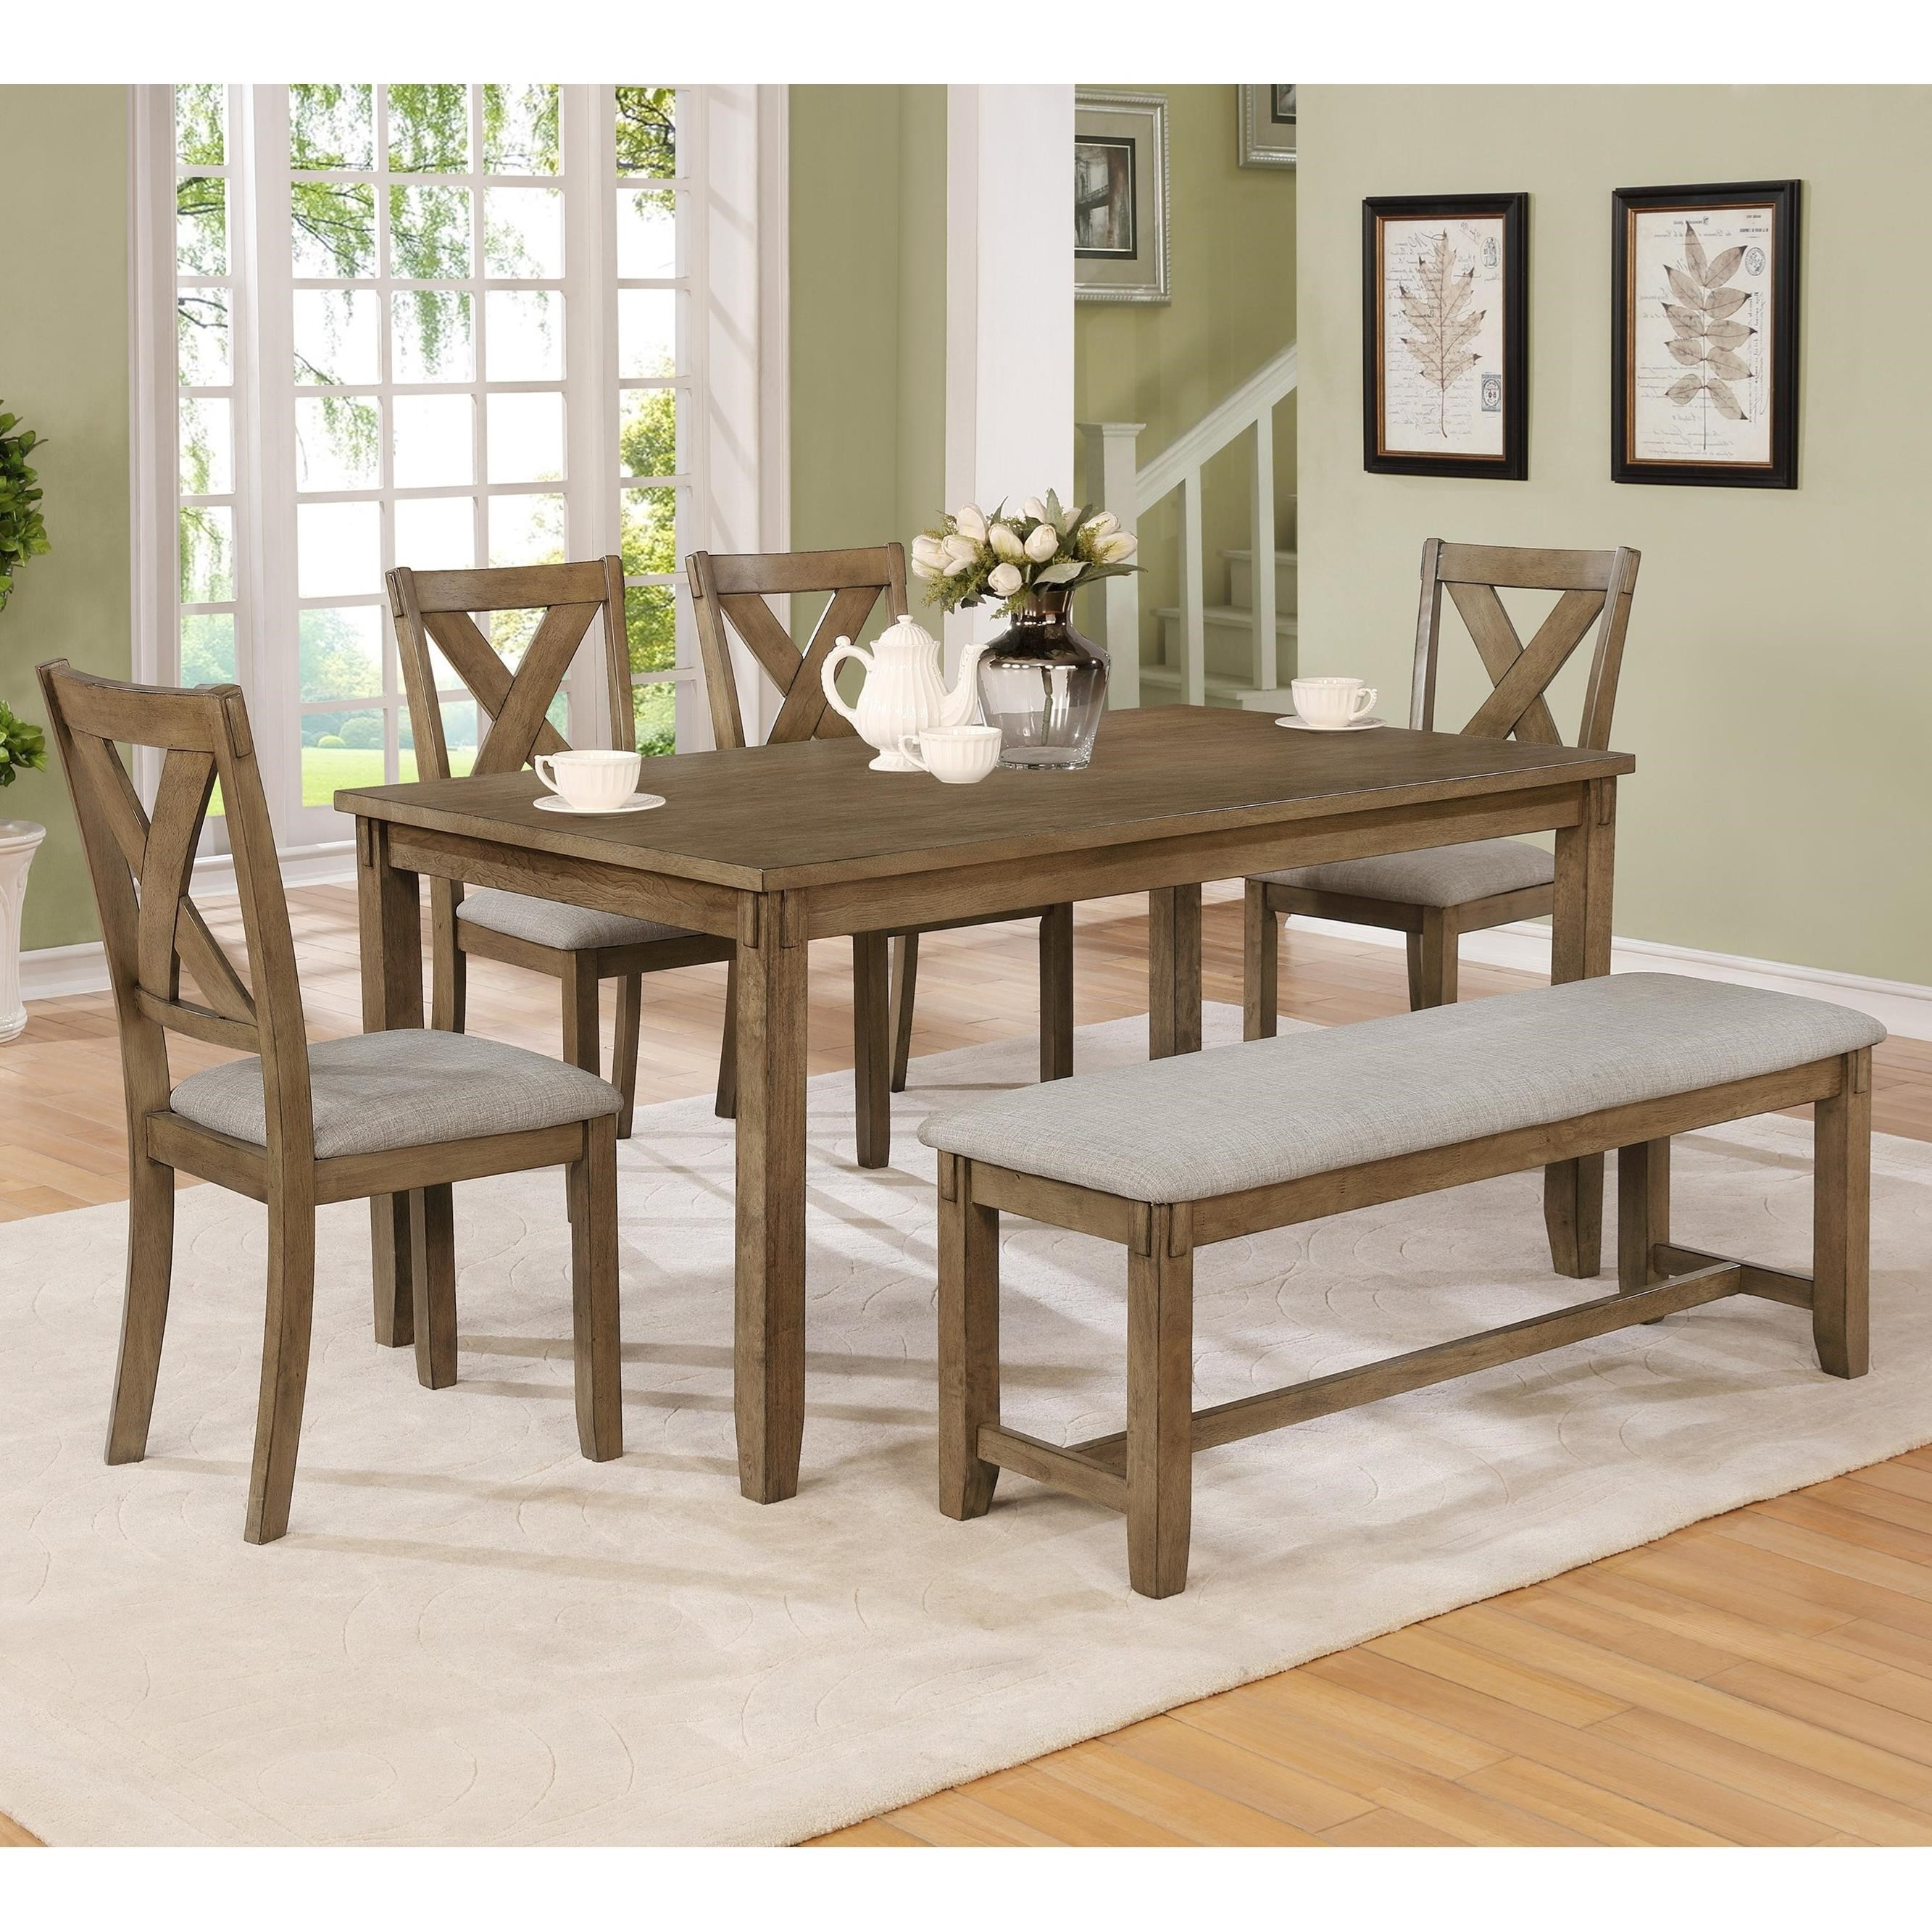 Dining Room Chair Sets Clara 6 Piece Table Set With Bench And Chairs By Crown Mark At Royal Furniture